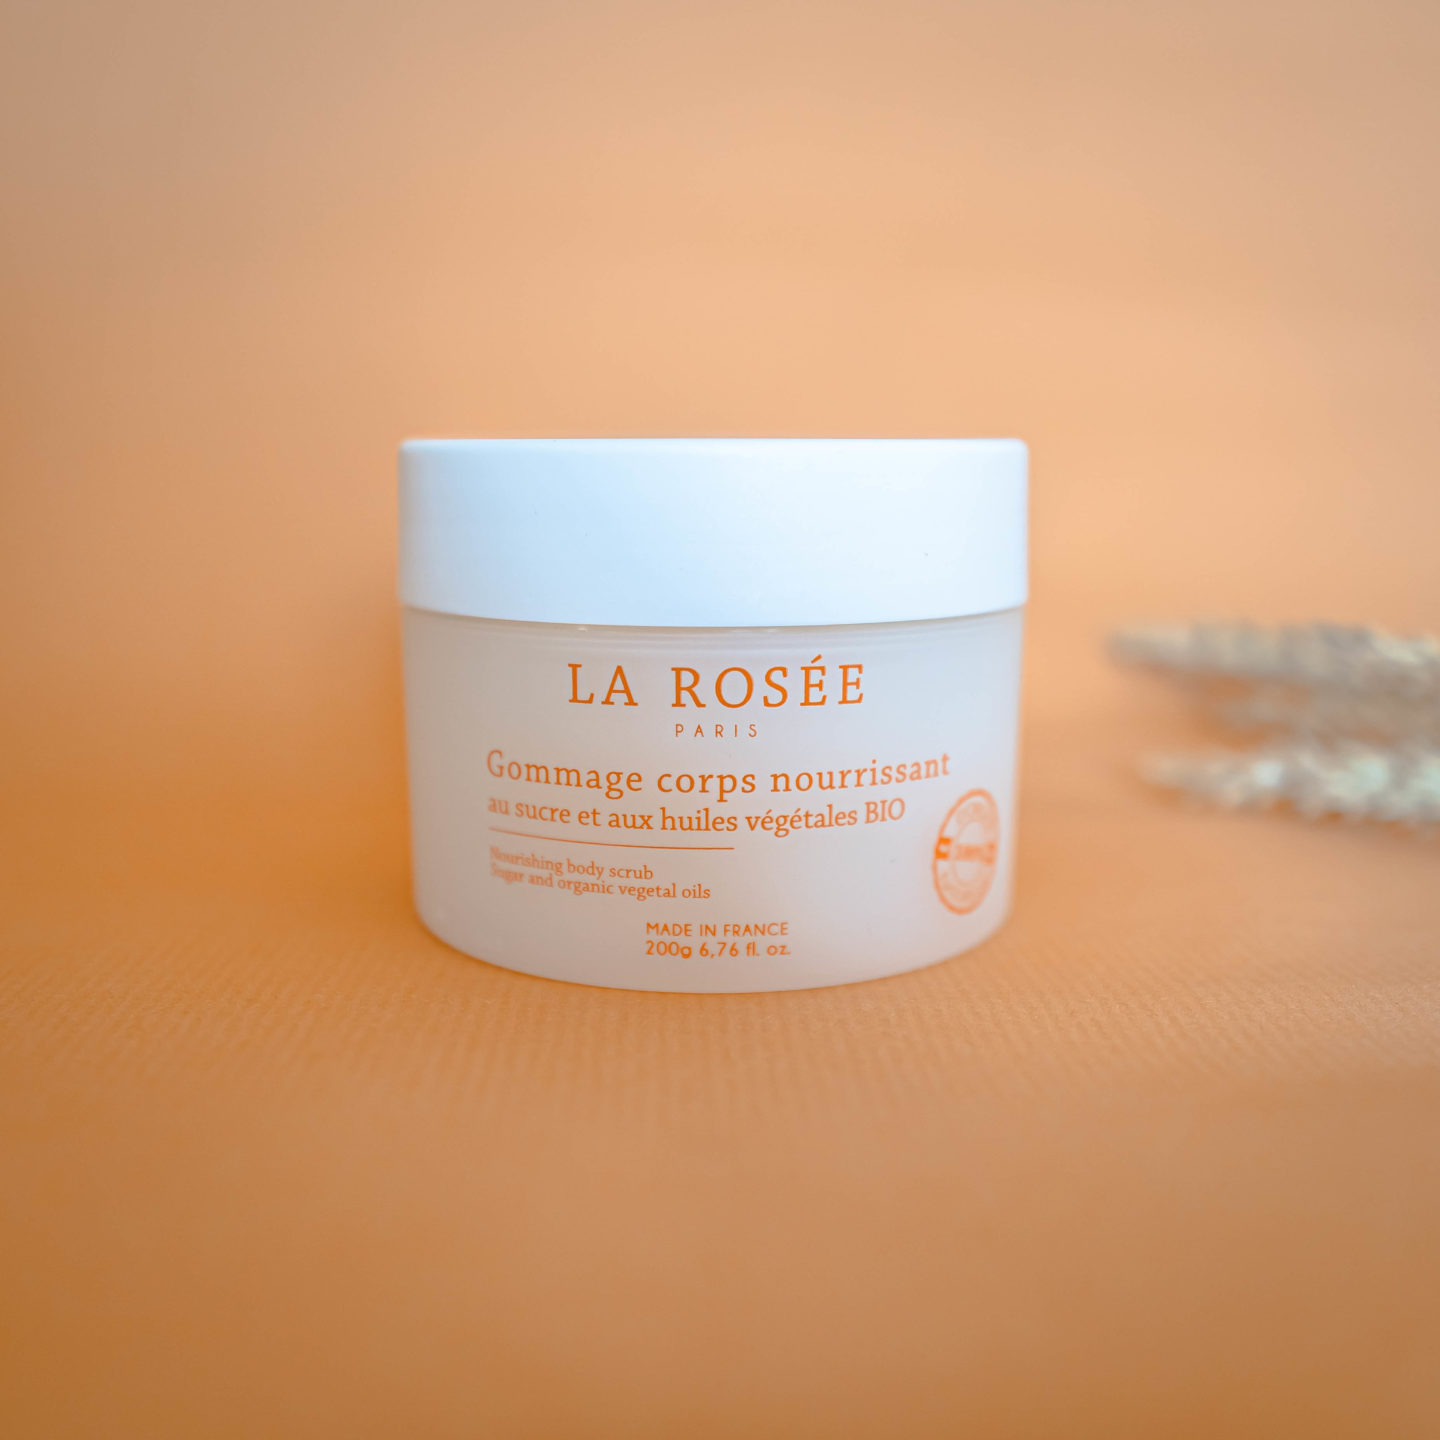 La Rosée gommage corps made in france bio